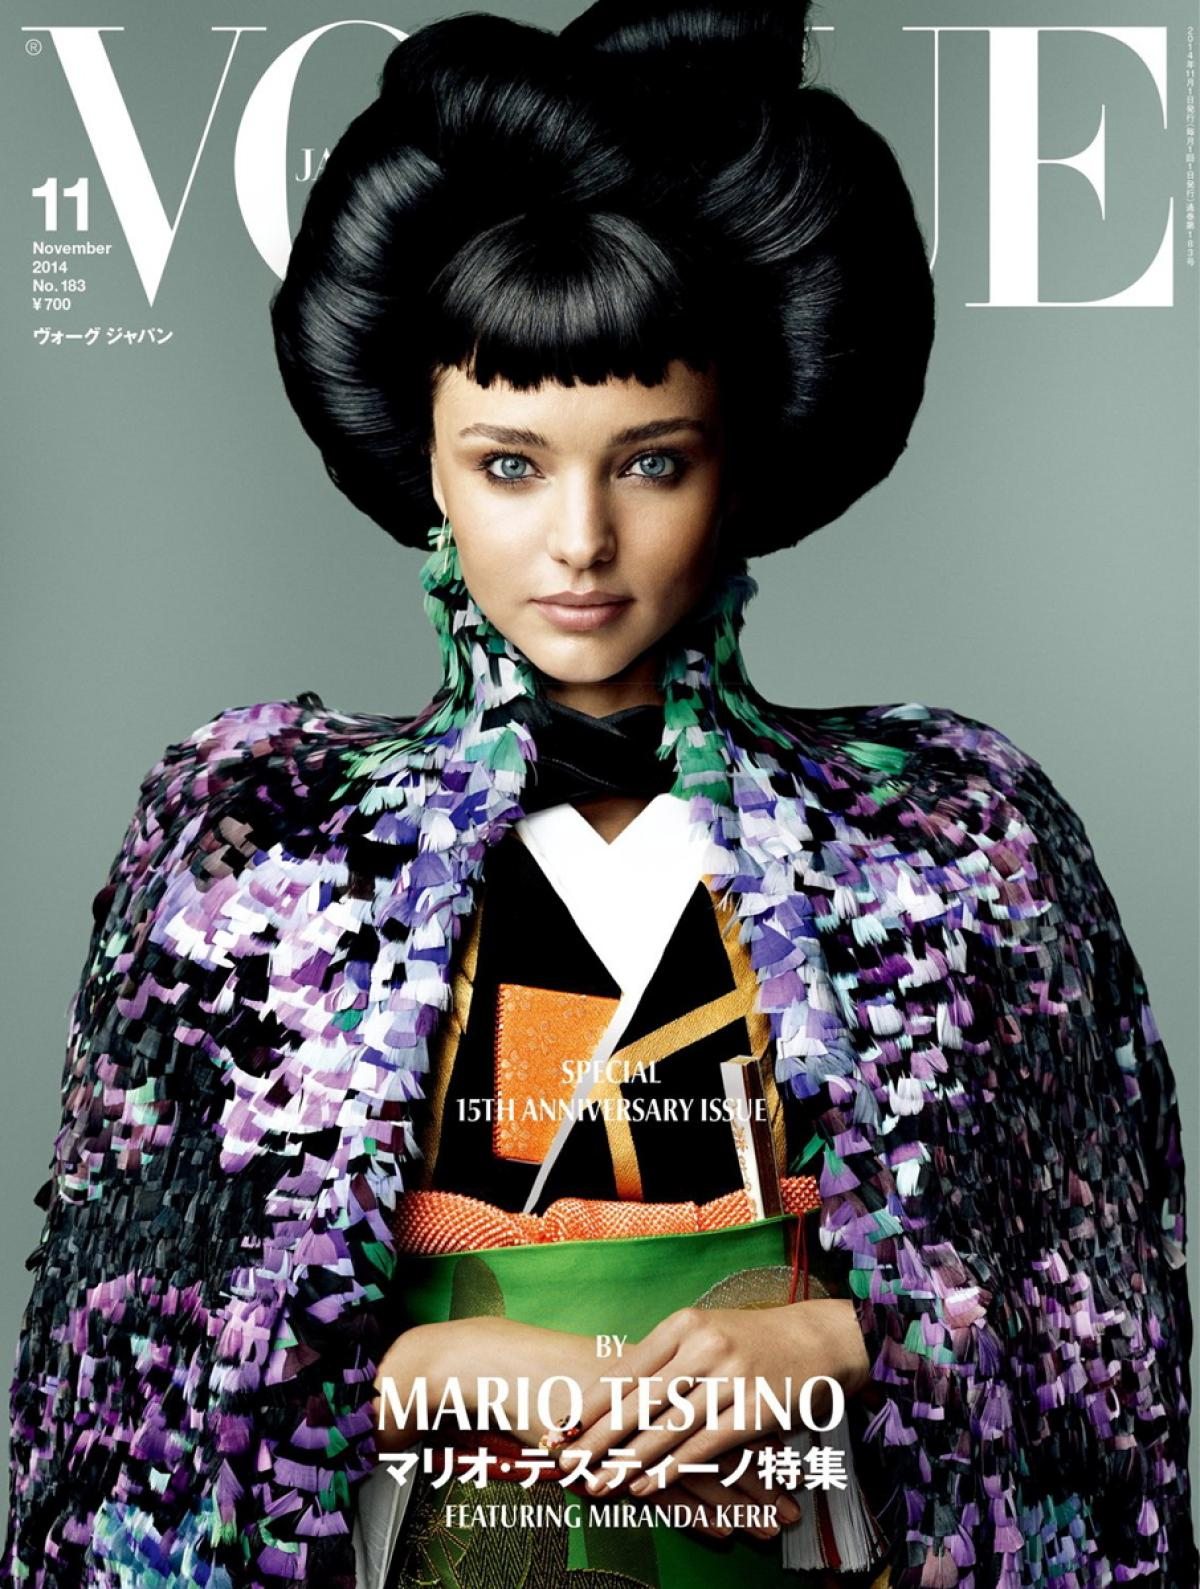 Miranda Kerr Goes Geisha Vogue Might